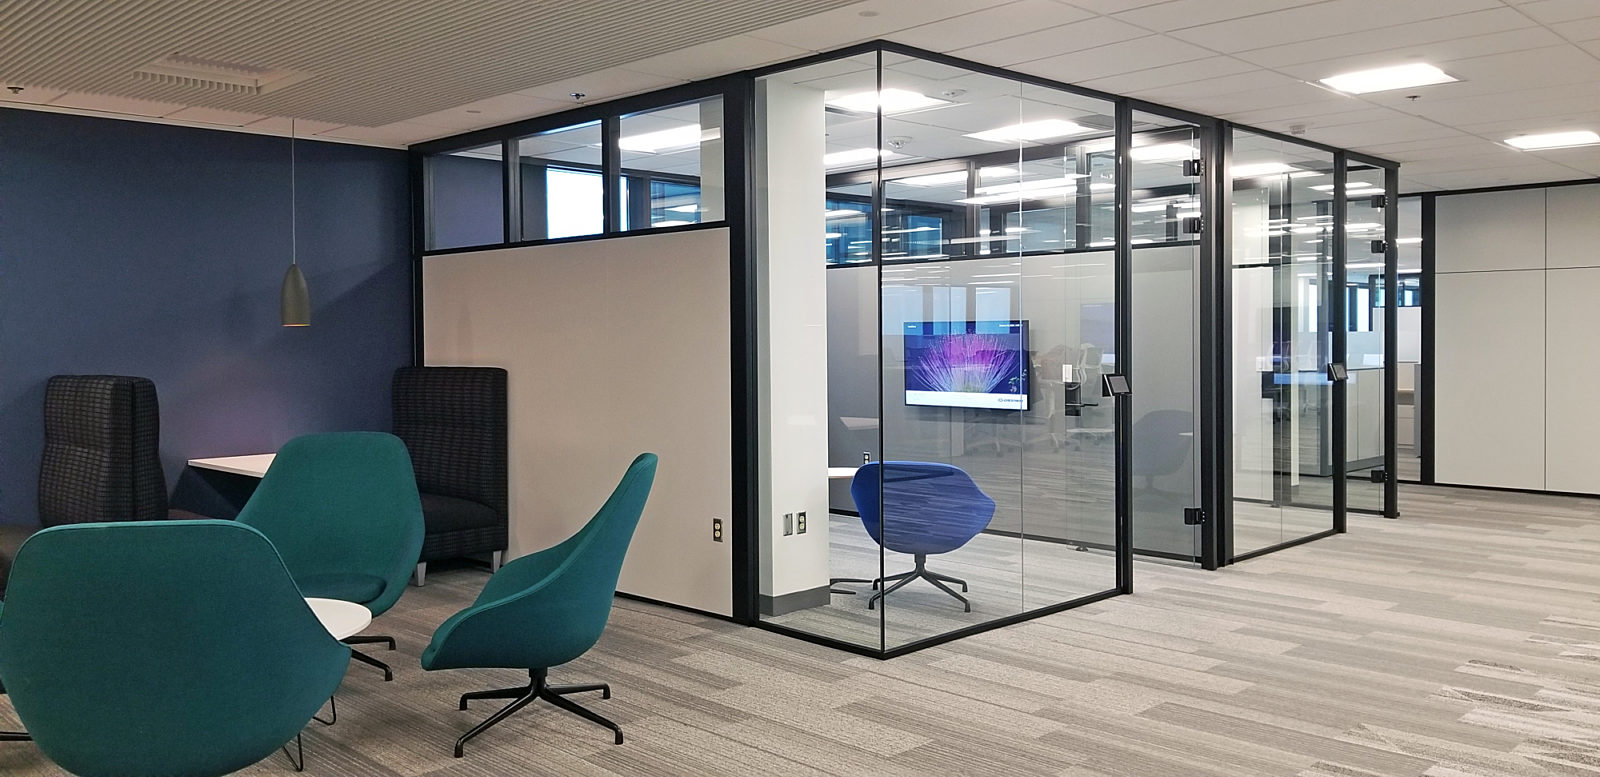 Office space with glass rooms and sitting area